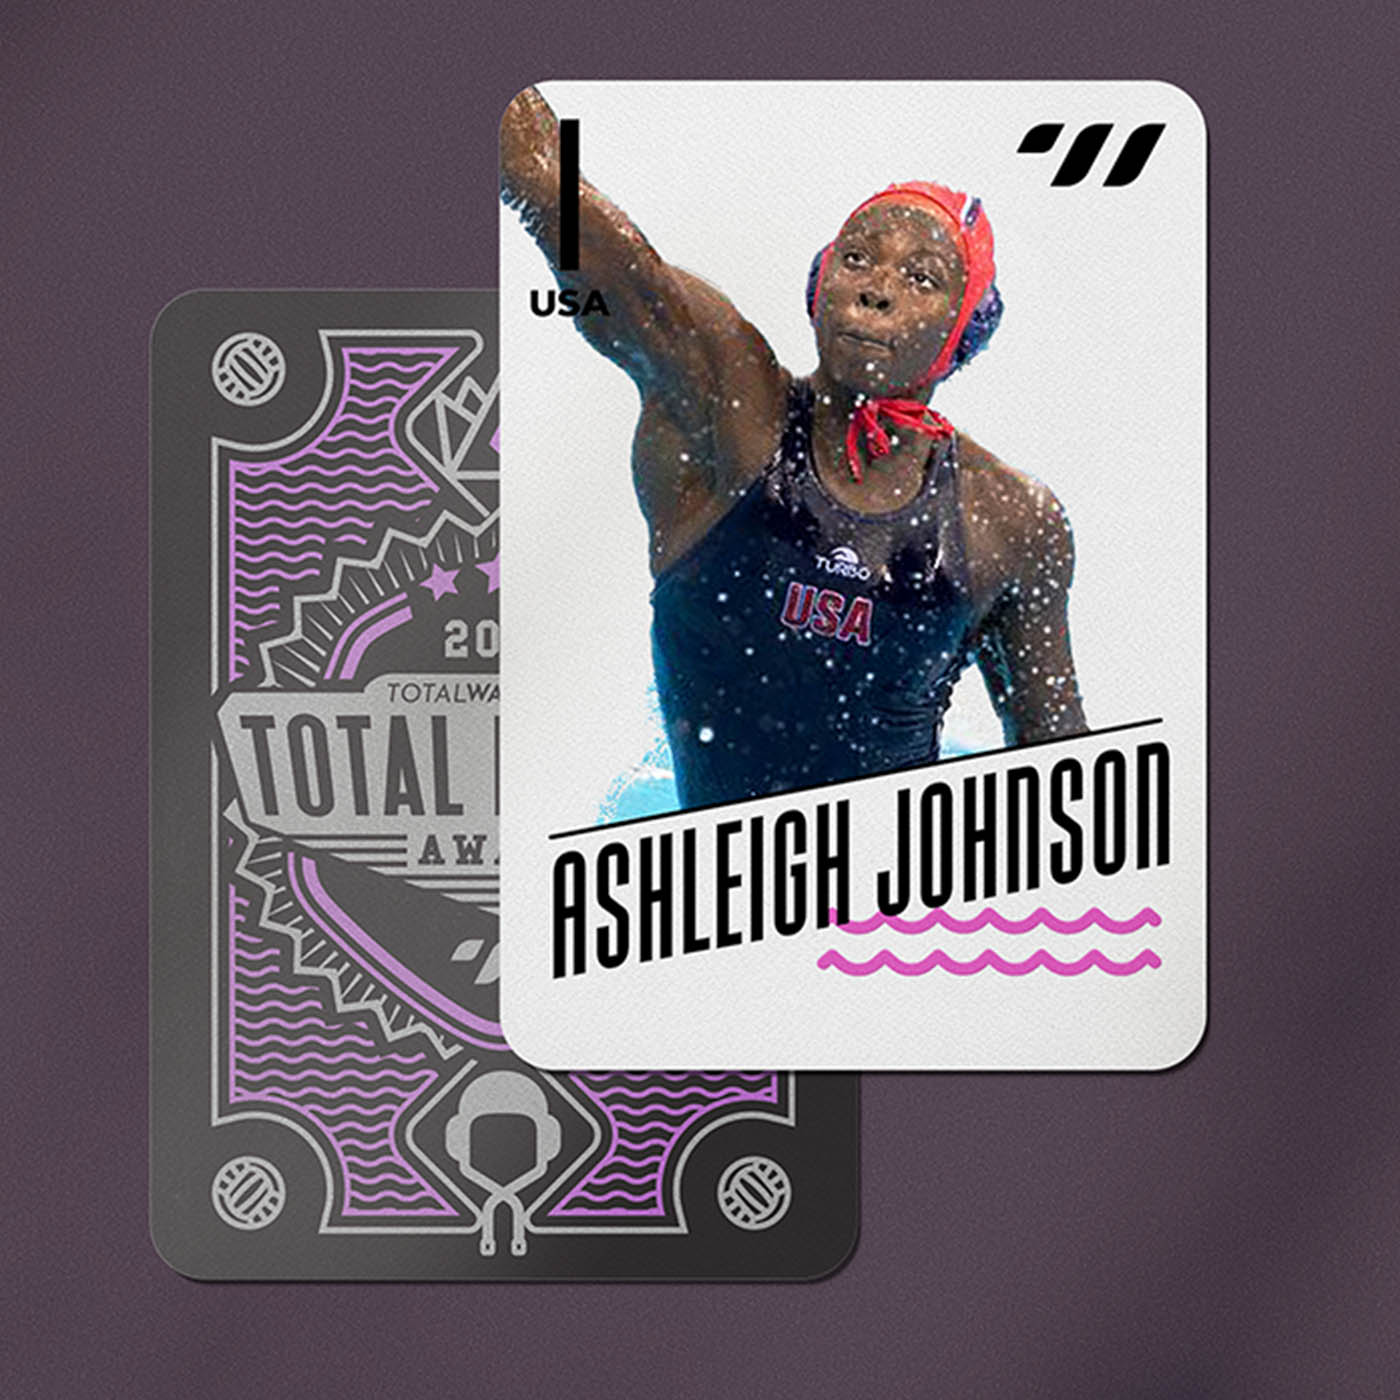 GOALKEEPER - Ashleigh Johnson (USA)